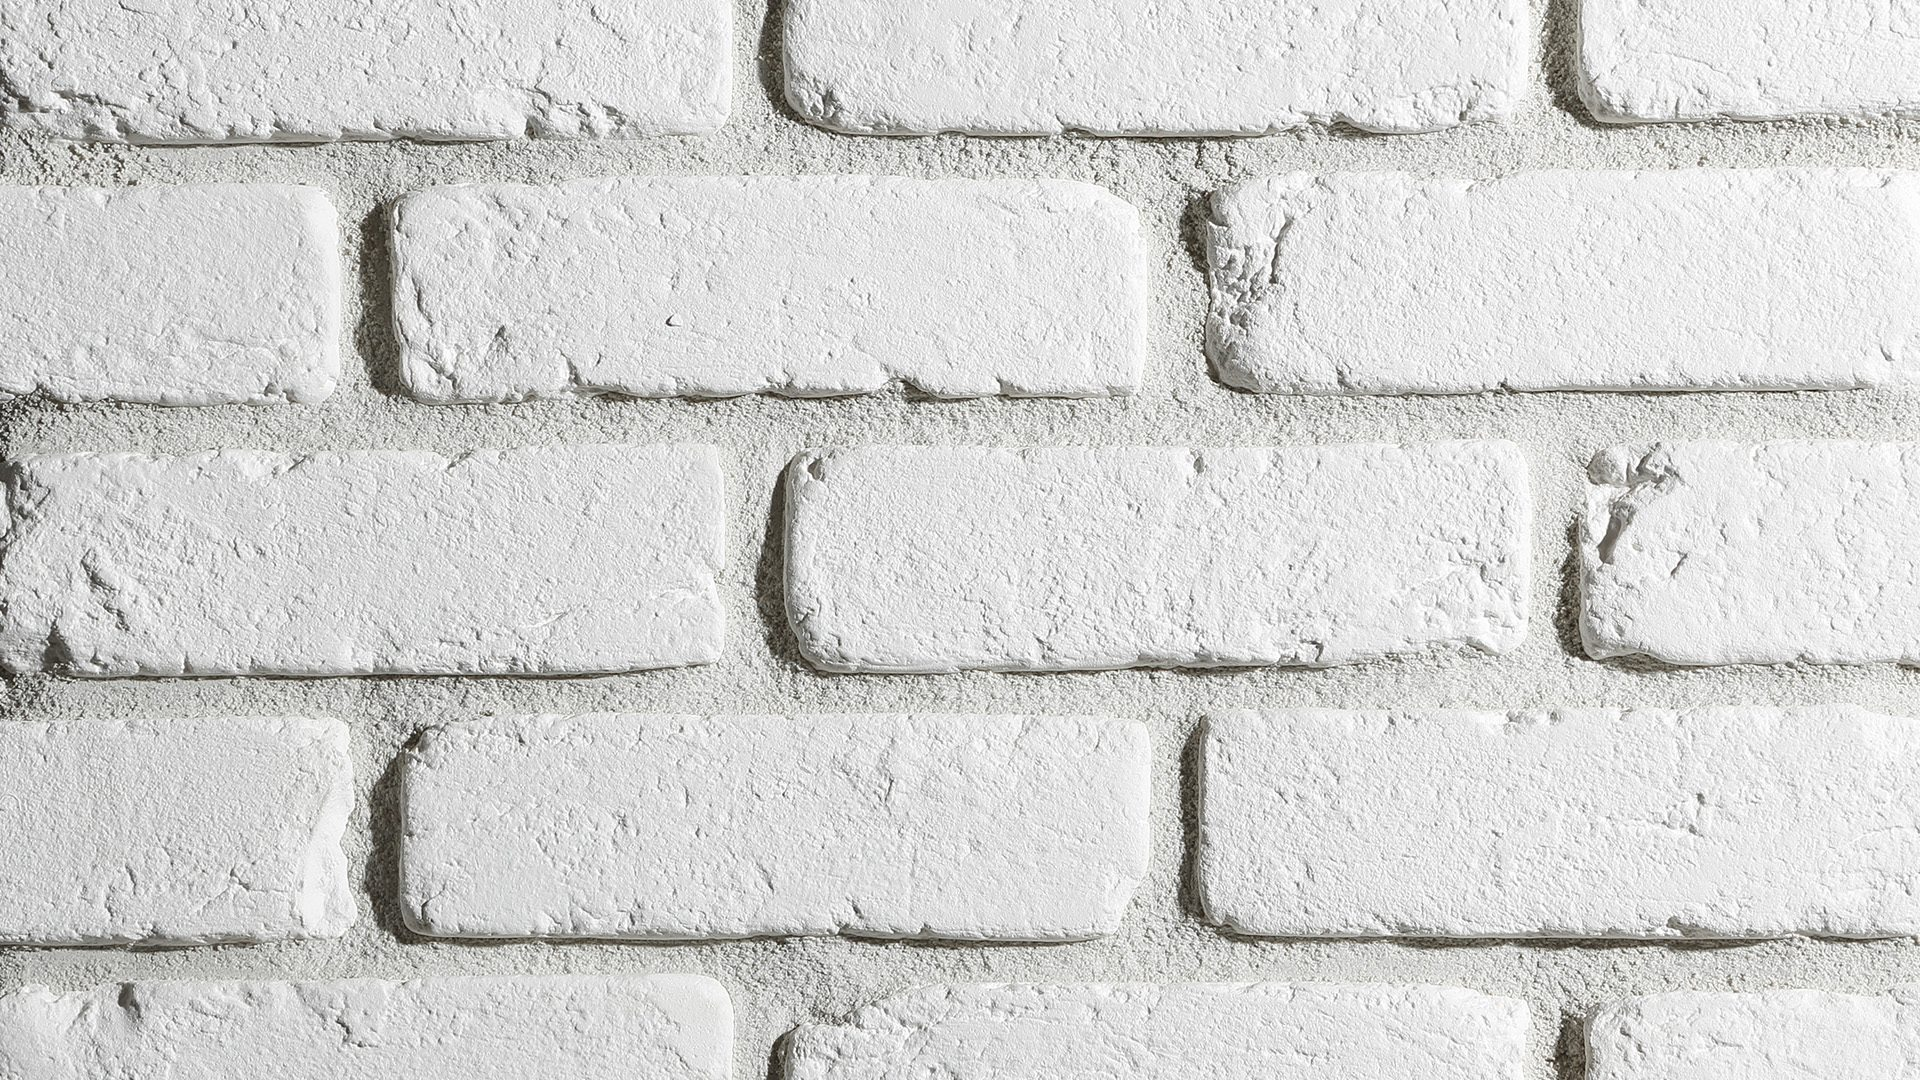 Vintage White Brick Slips